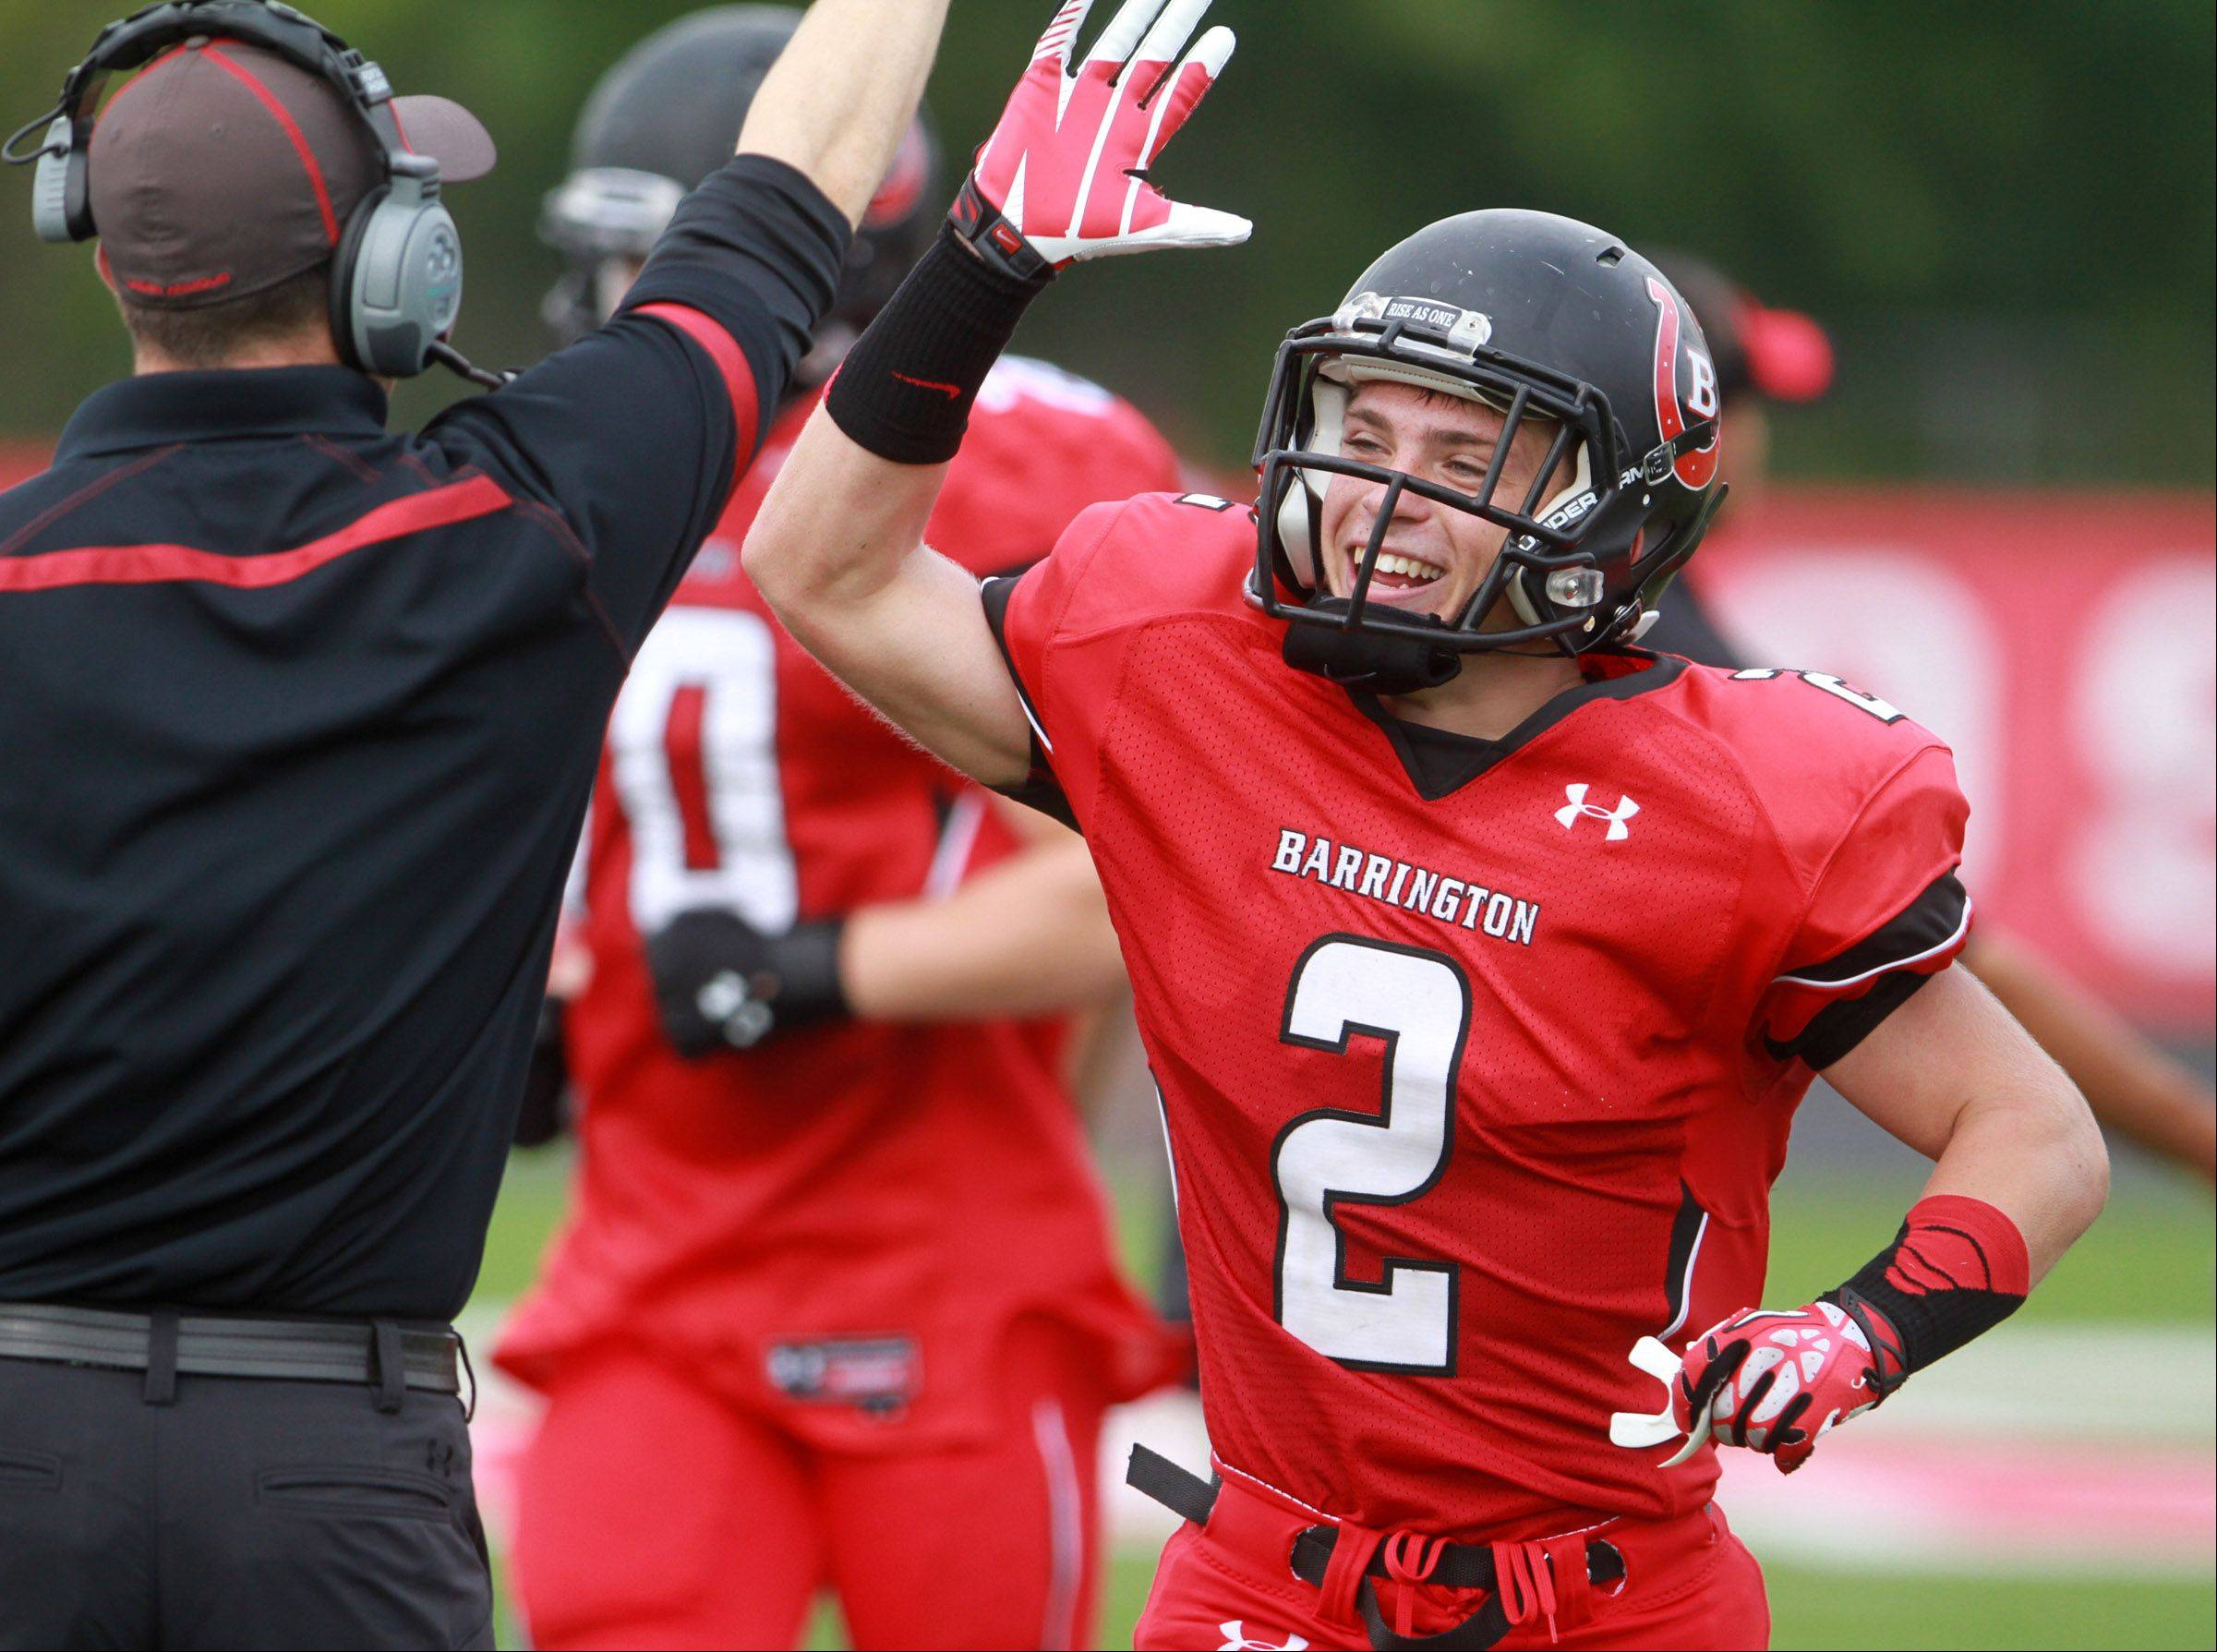 Barrington wide-receiver Matt Moran celebrates a touchdown as he returns to the sideline against Fremd at Barrington on Saturday,October 5.